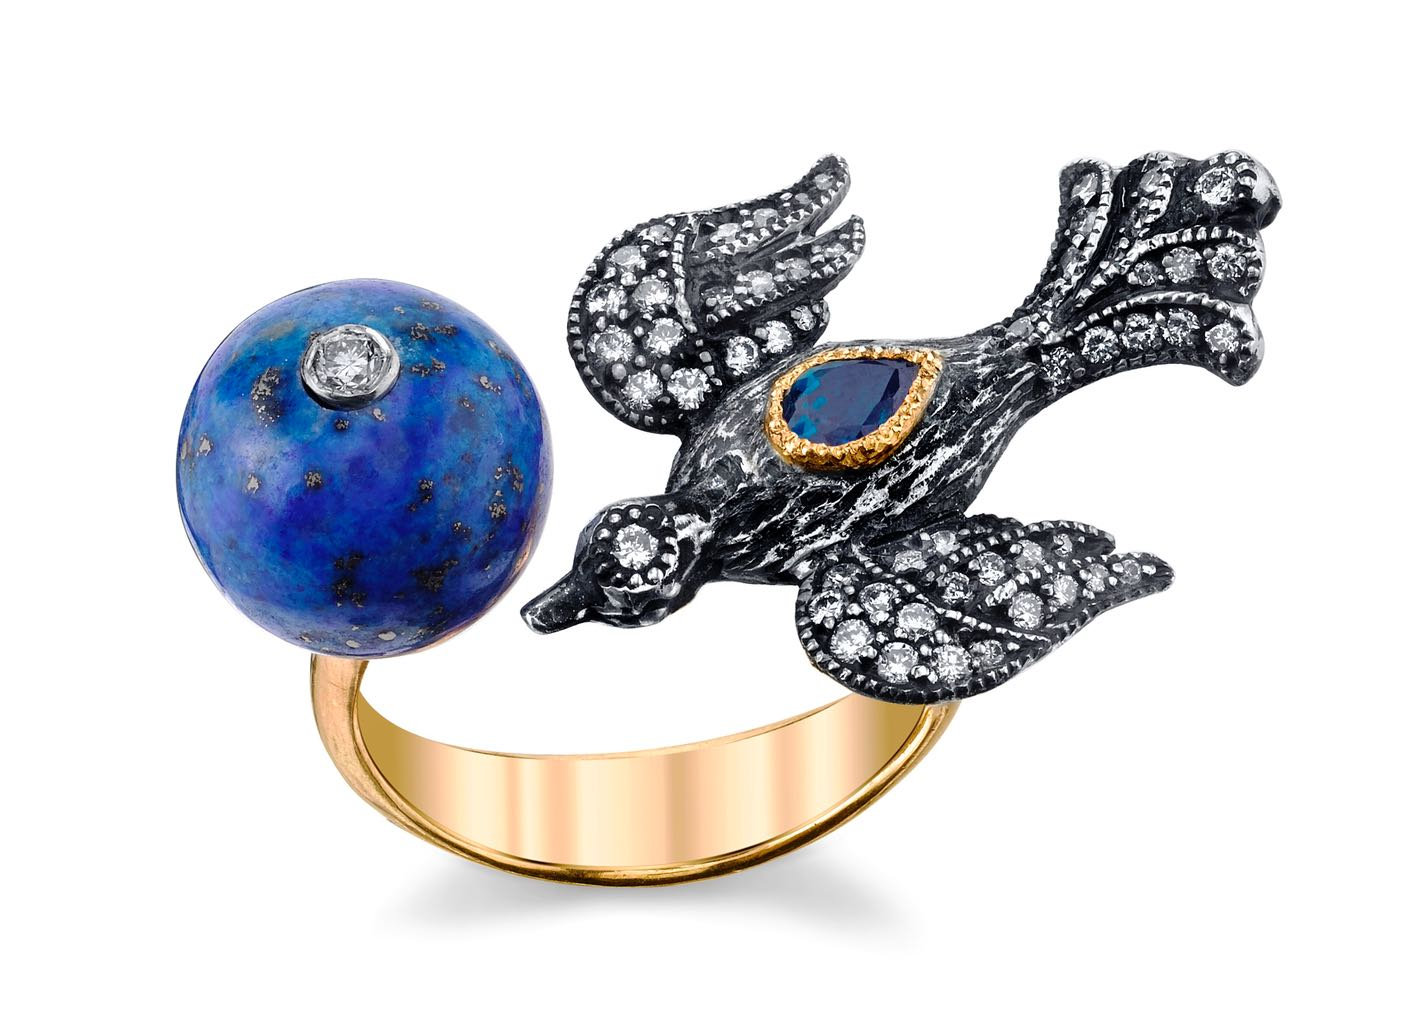 One of Lynn's contemporary favorites, her Arman Sarkisyan 22K gold and silver Peace on Earth ring with lapis, diamonds, and blue sapphire. Photo courtesy